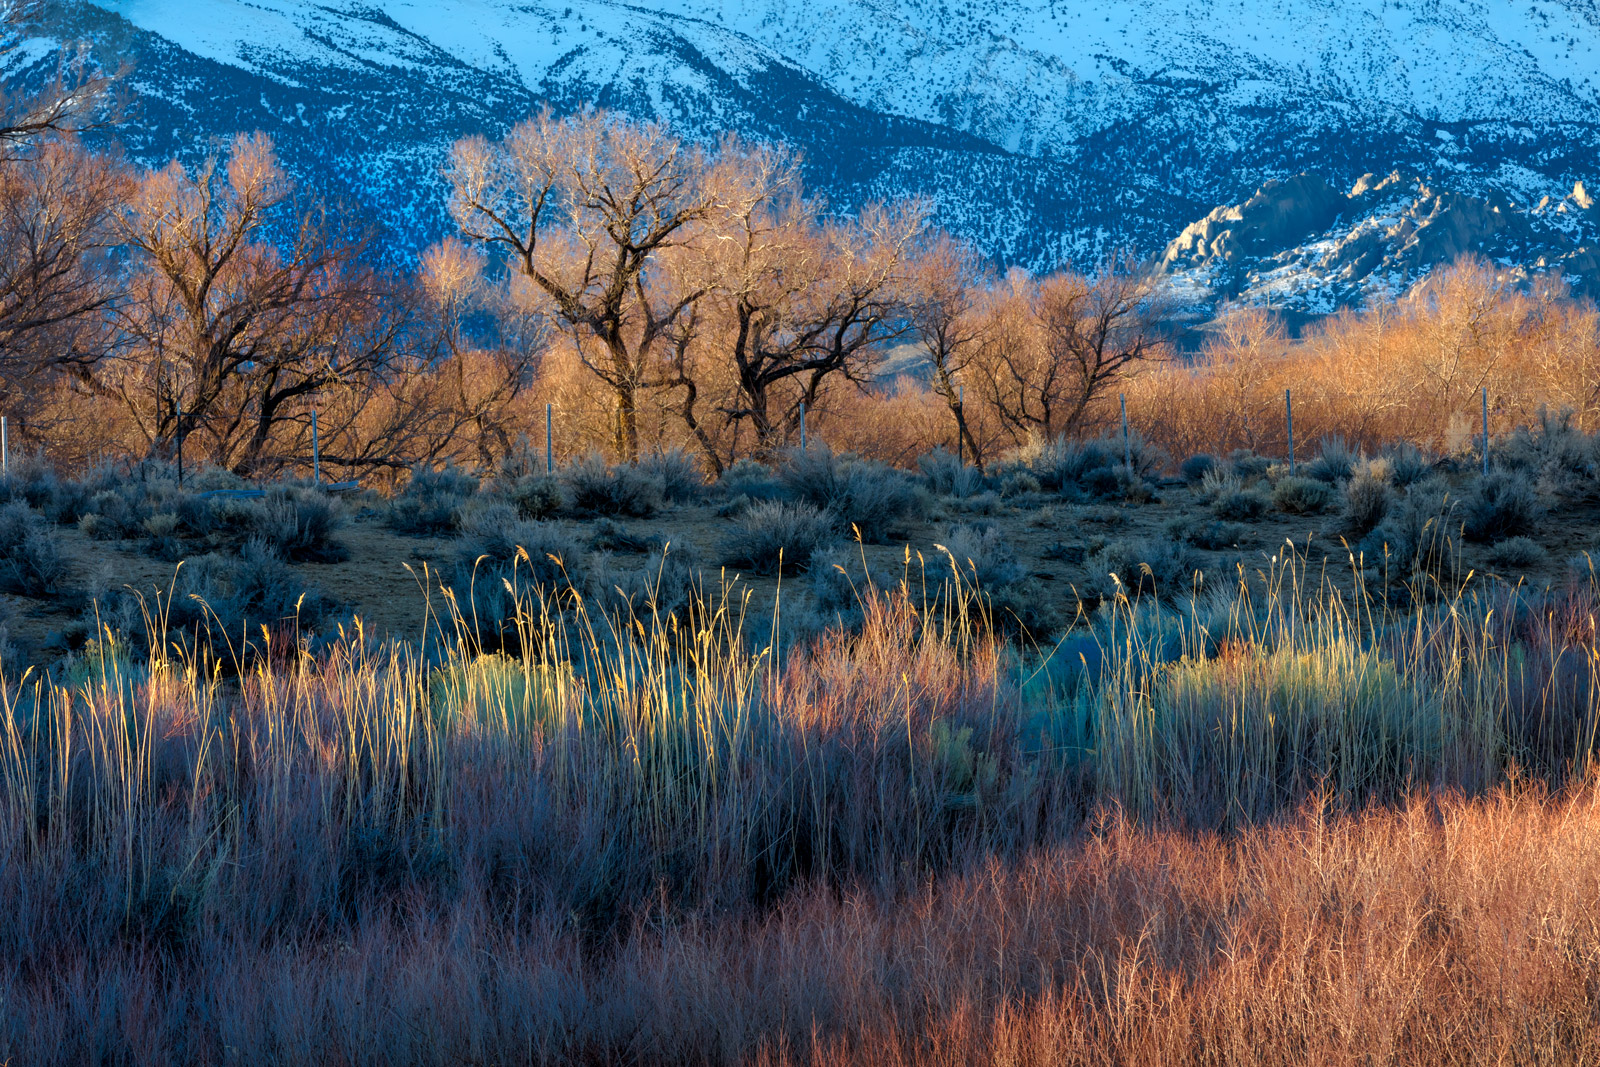 A Limited Edition, Fine Art photograph of layers of colors in the trees and foliage of the Eastern Sierra Mountains during the...